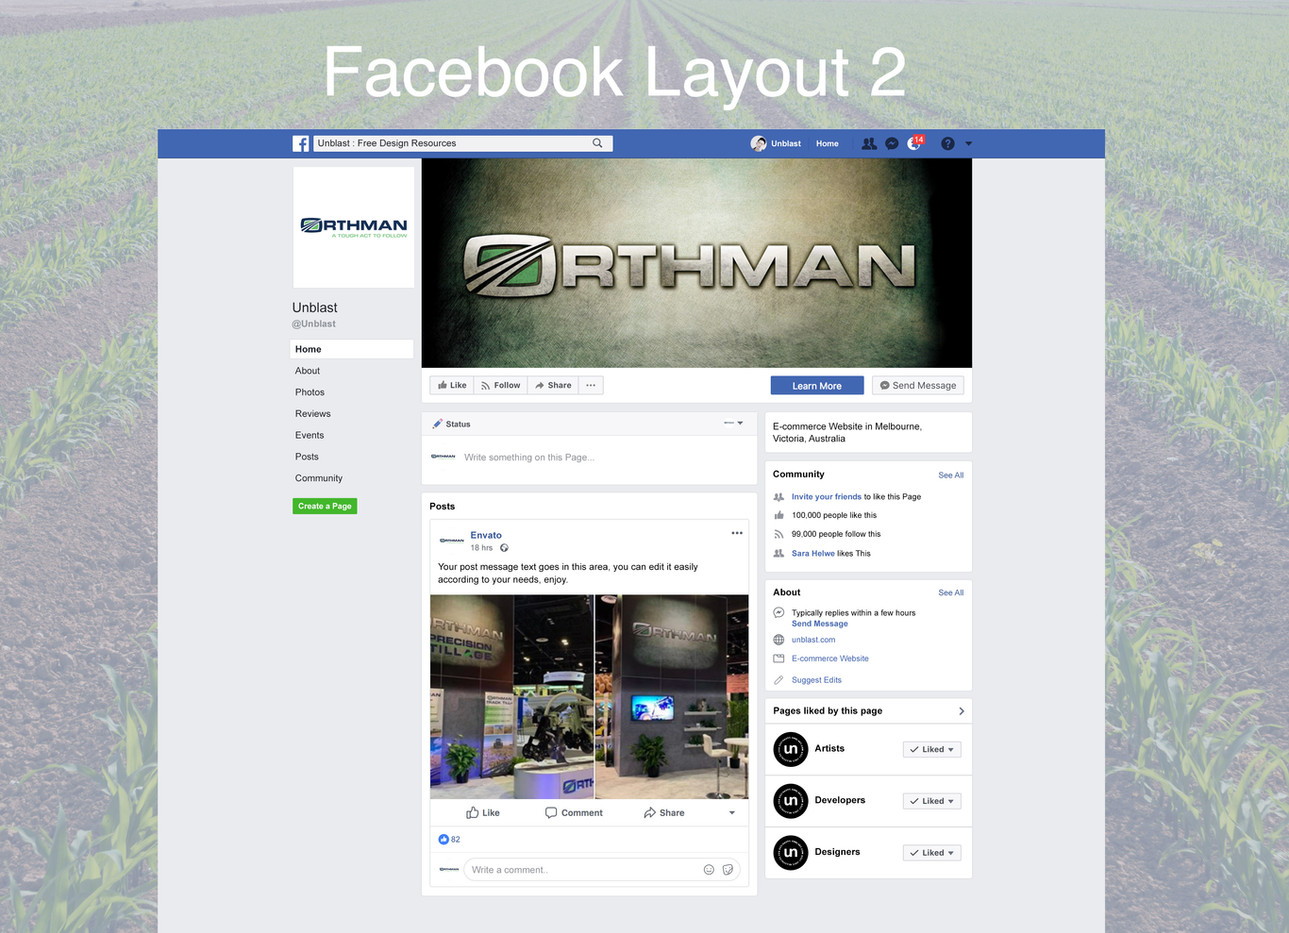 Facebook Layout 2.jpg